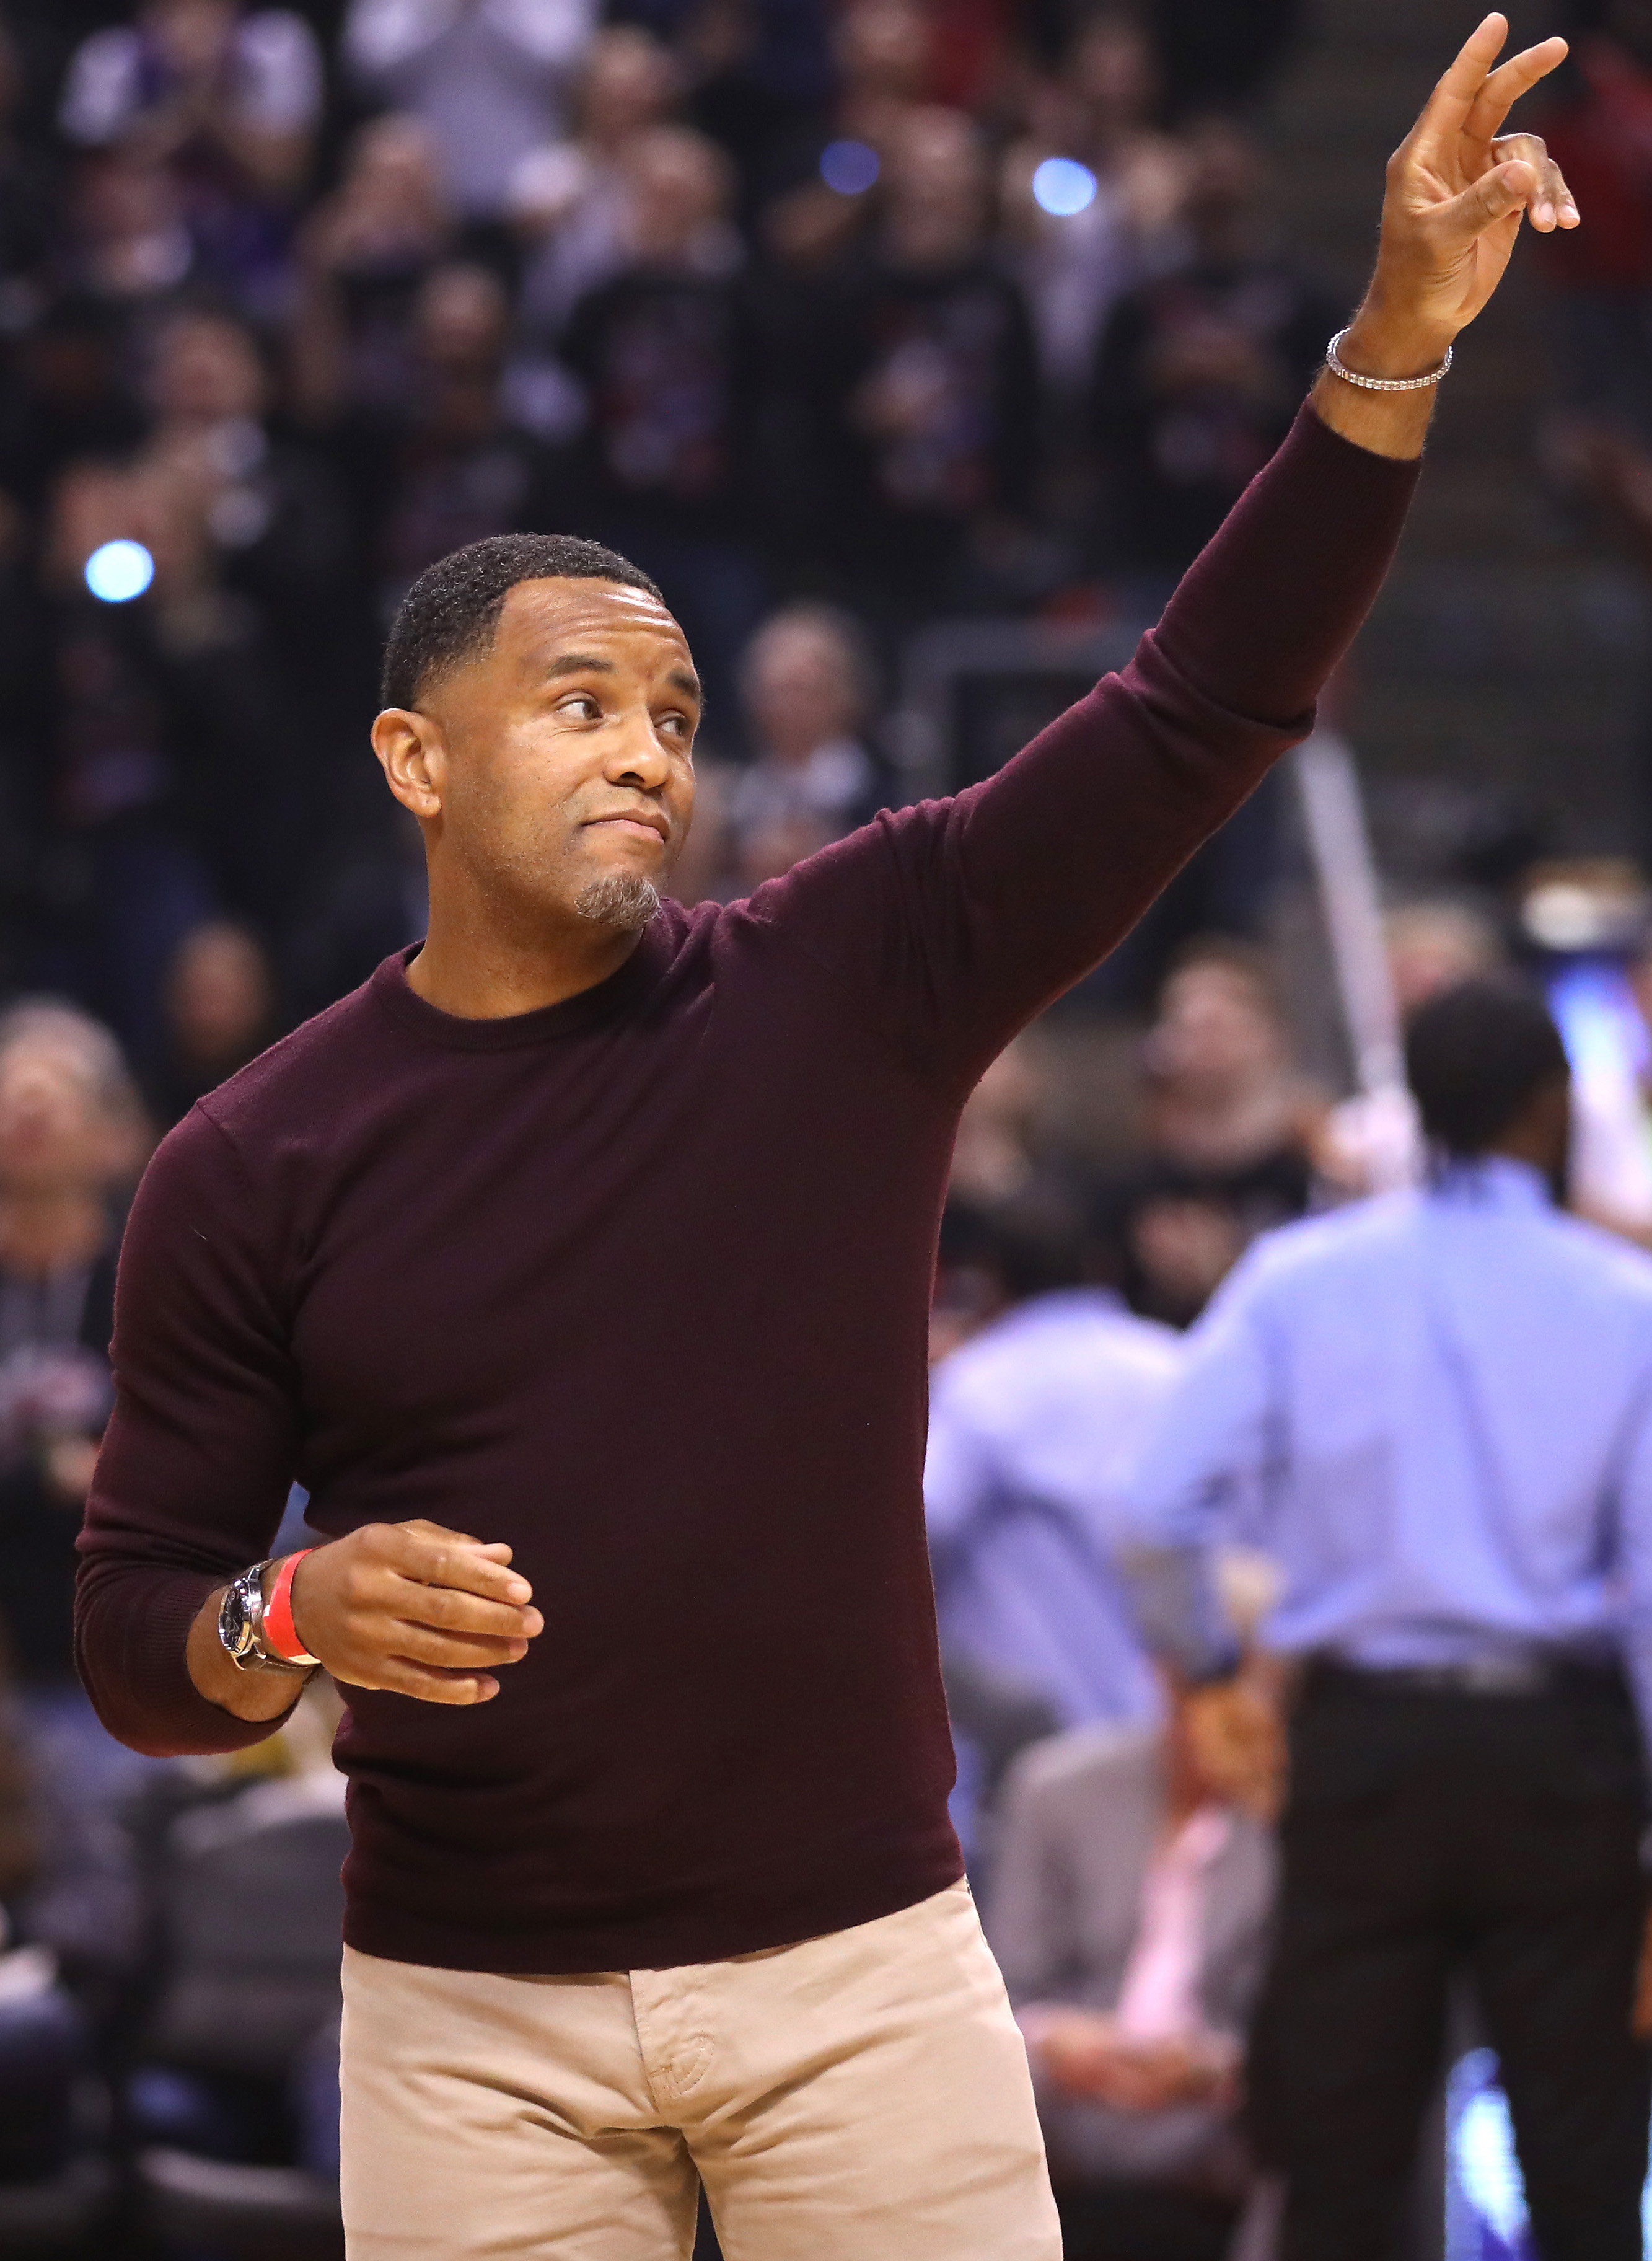 Damon Stoudamire on the Raptors' first game, the chilly SkyDome, and coming back to Toronto